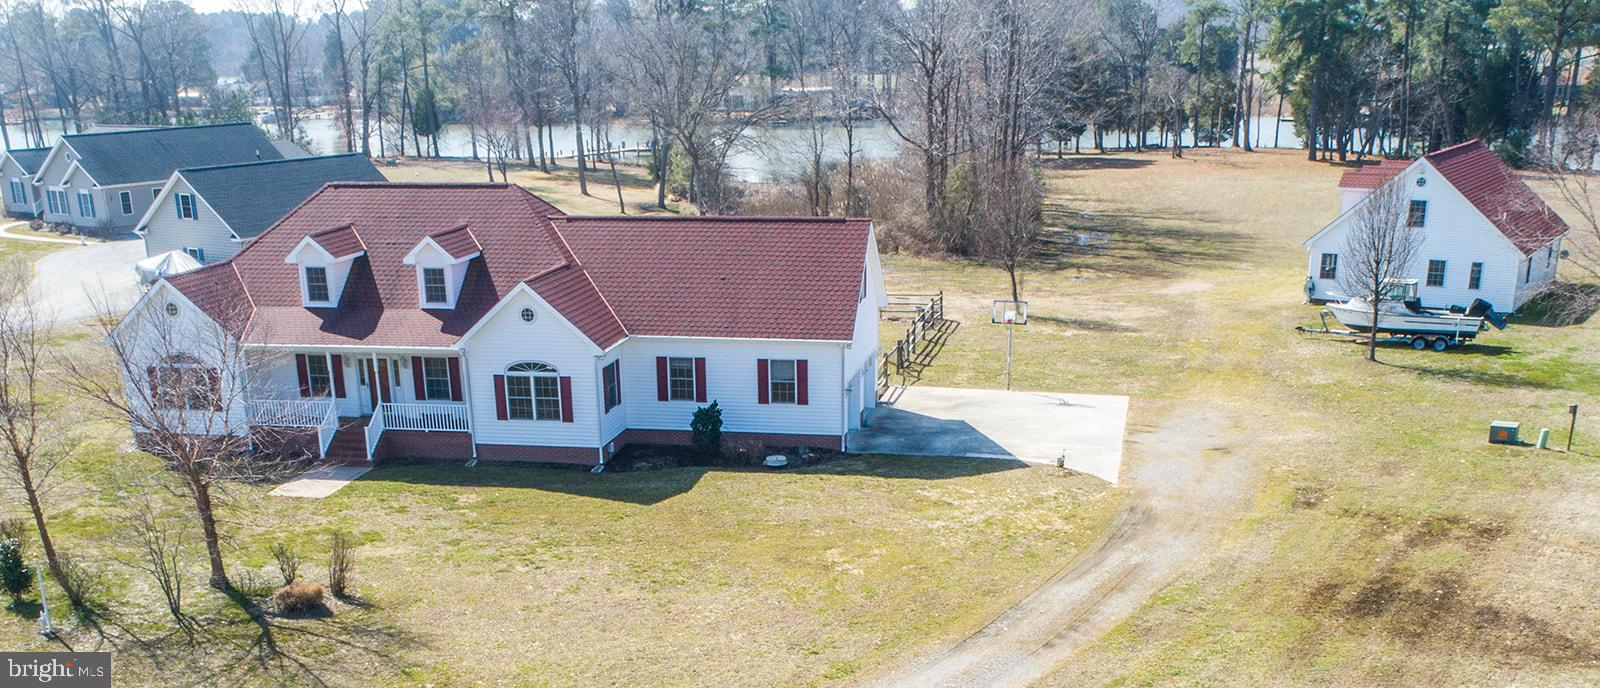 354 SAFE HARBOR LANDING, HAGUE, VA 22469